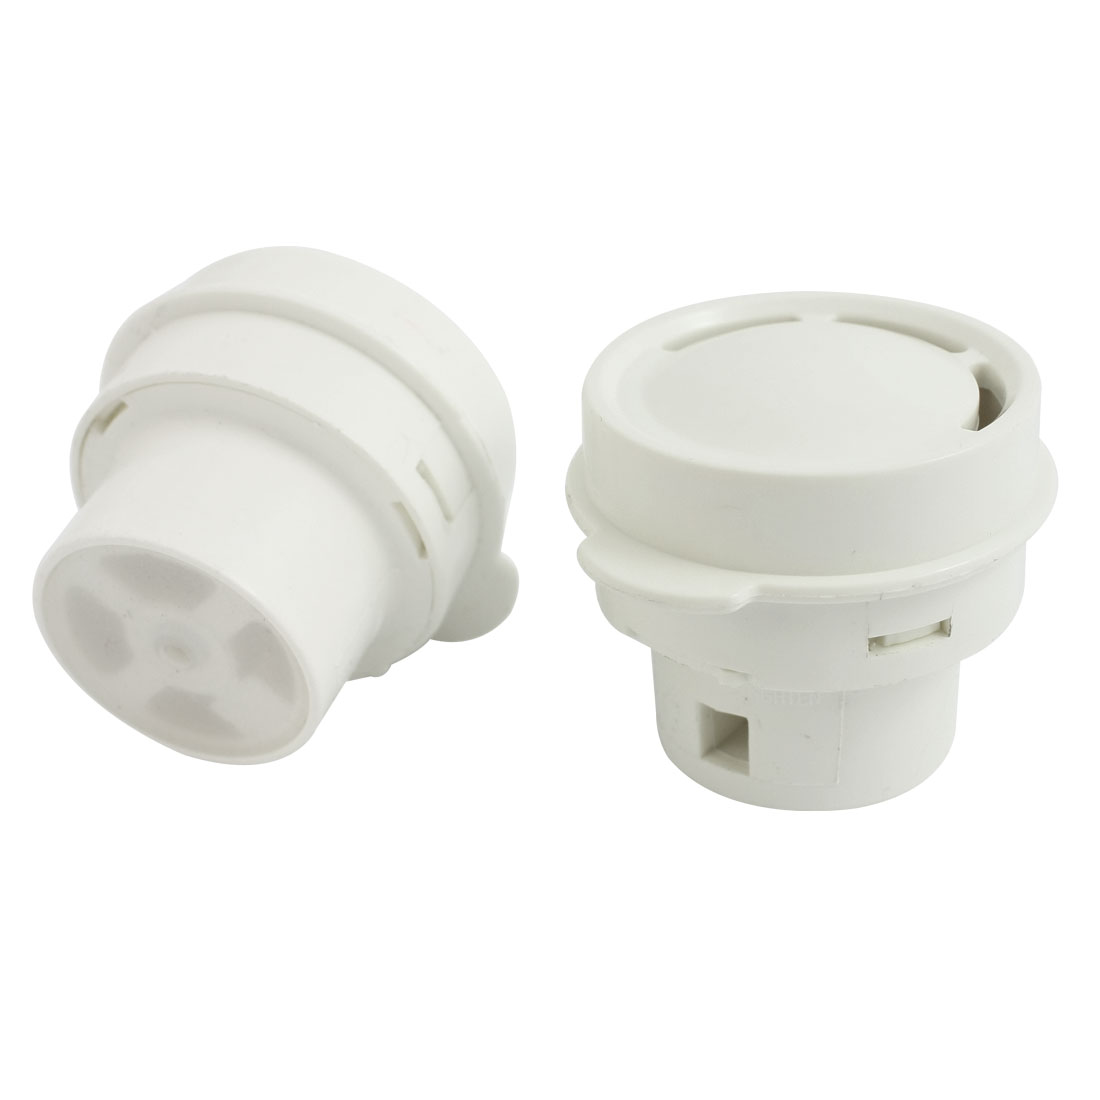 32mm Bottom Dia Electric Cooker Plastic Steam Release Valve Vent 2pcs